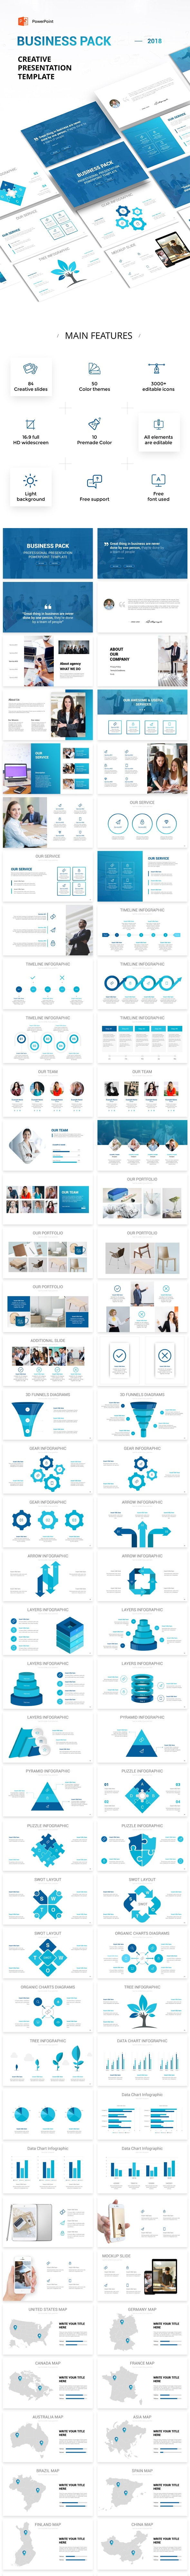 Business Pack PowerPoint Presentation Template - Pitch Deck PowerPoint Templates